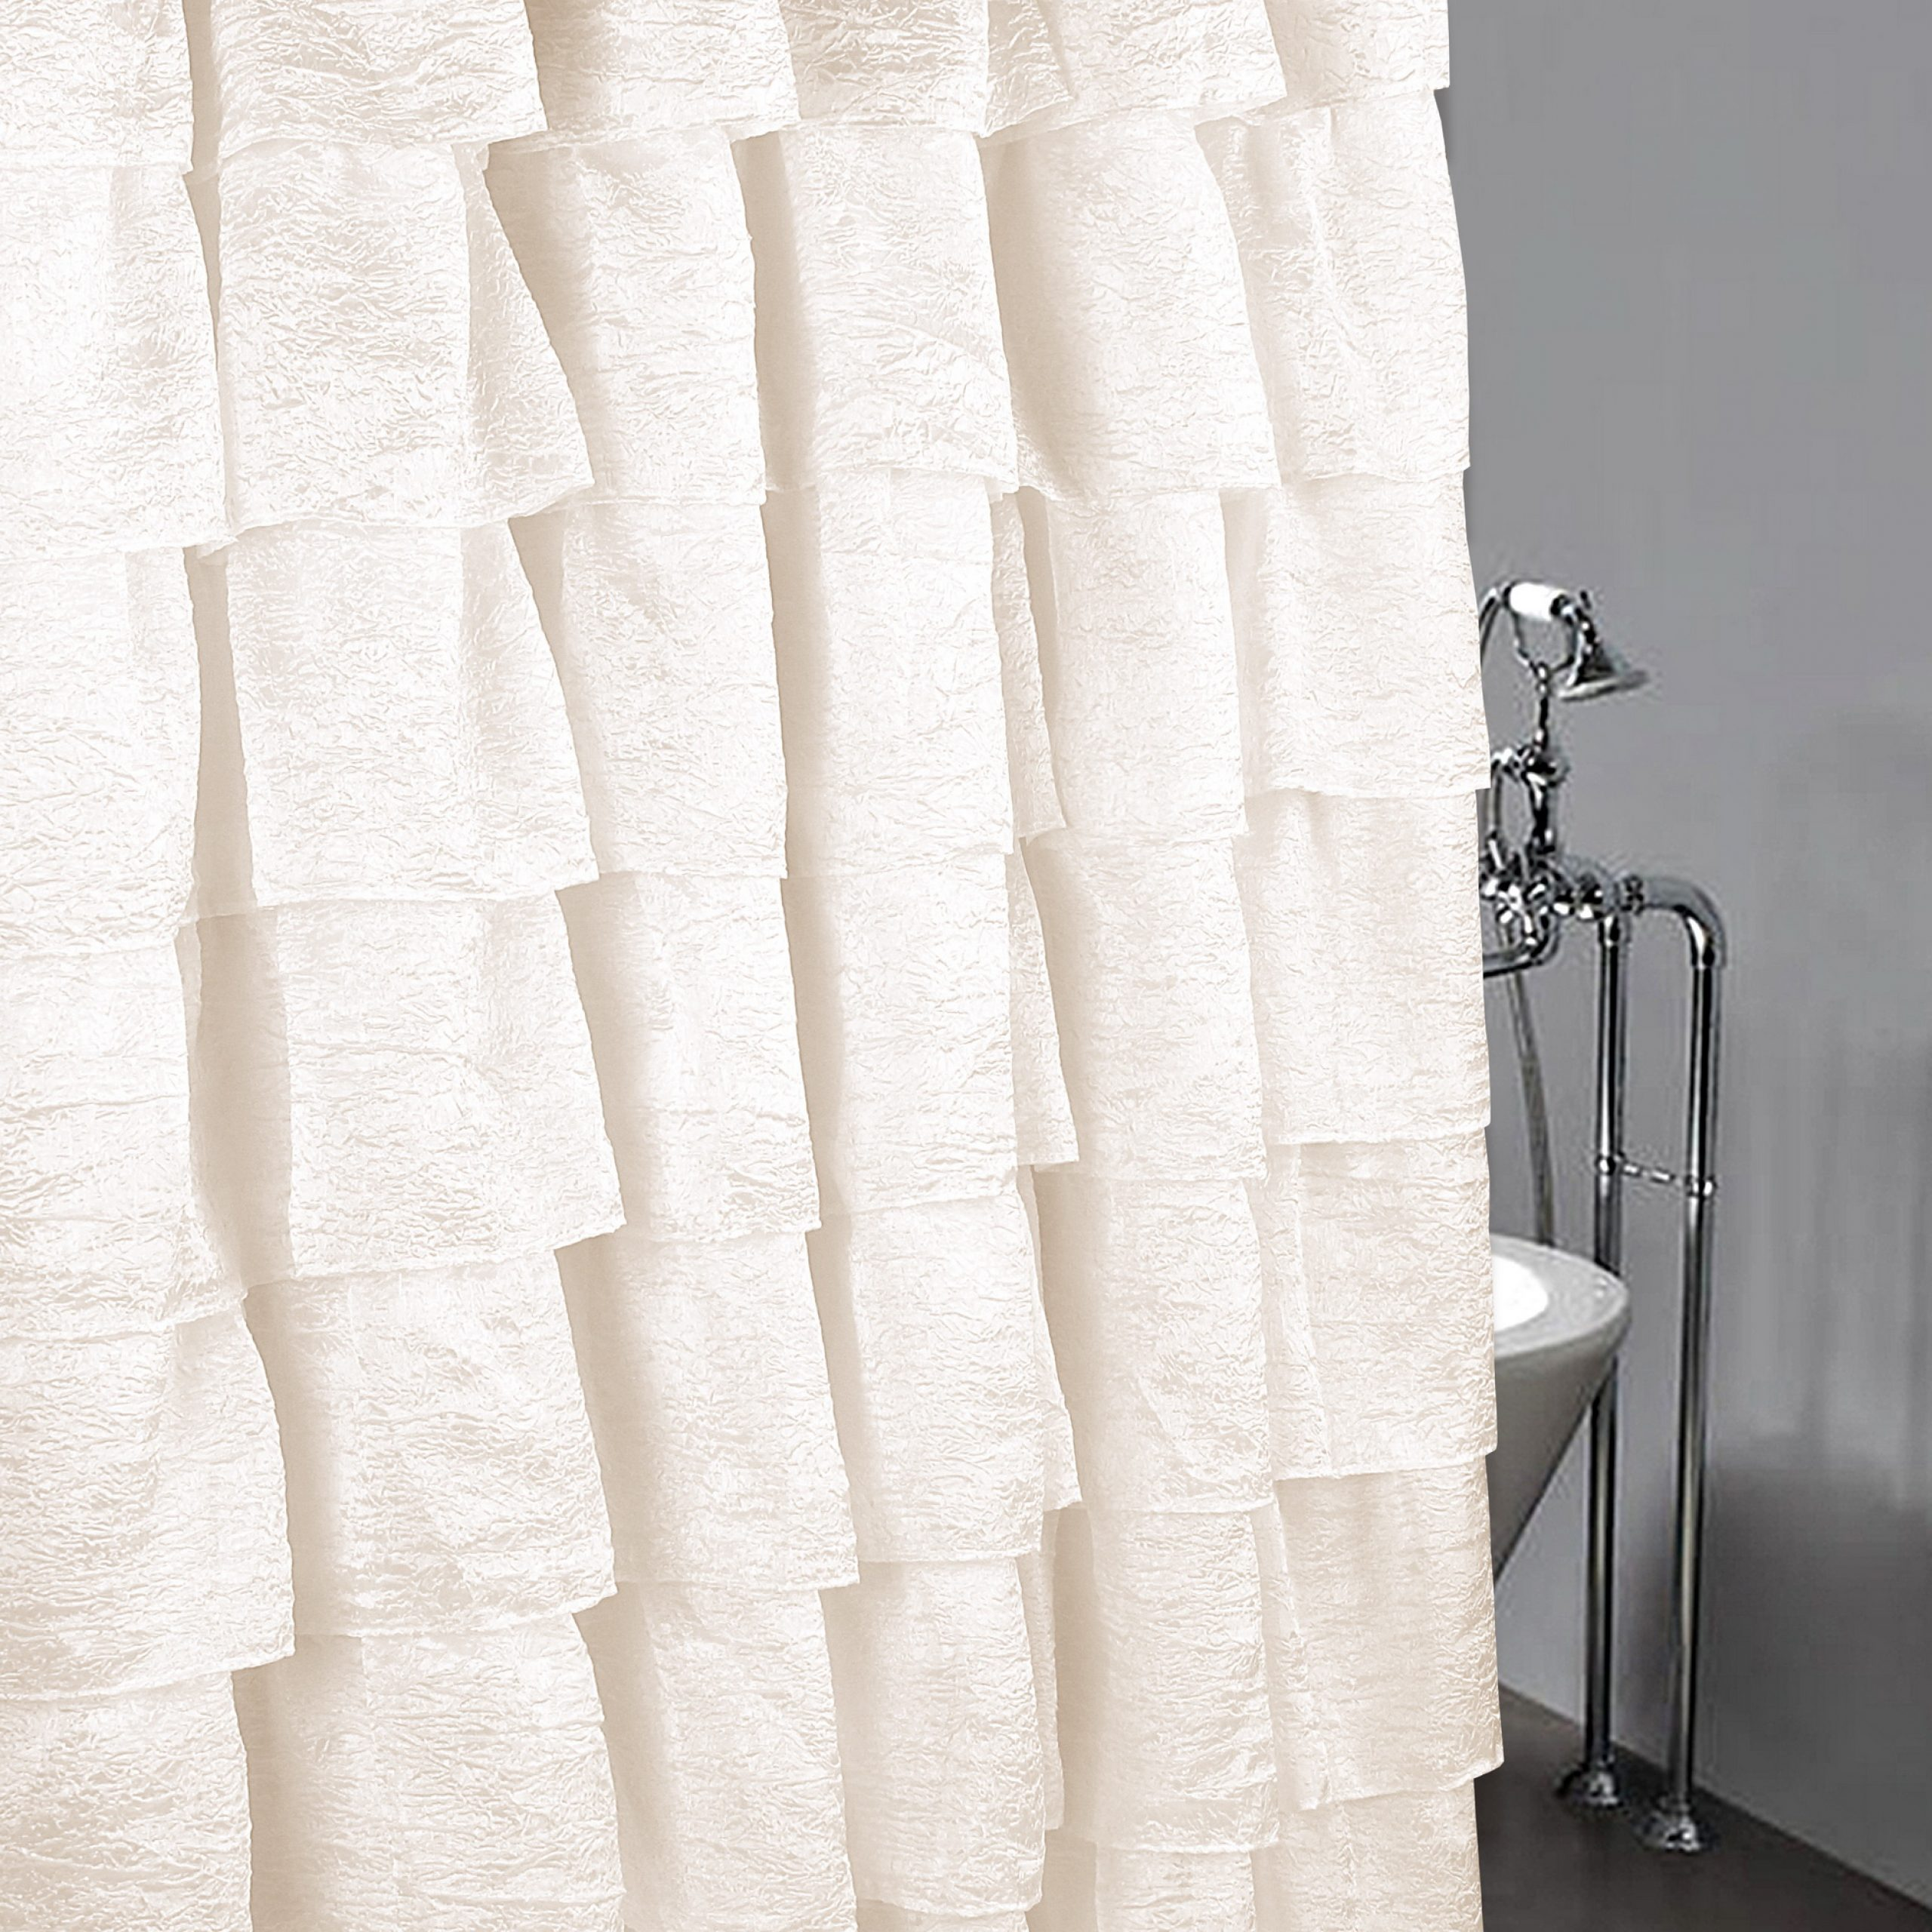 "Elegant Crushed Voile Ruffle Window Curtain Pieces Pertaining To Most Current Golden Linens Crushed One Piece Voile Sheer Shabby Chic Gypsy Ruffle Window  Curtain Panel (Shower Curtain 70"" X 72"", Ivory) (Gallery 7 of 20)"